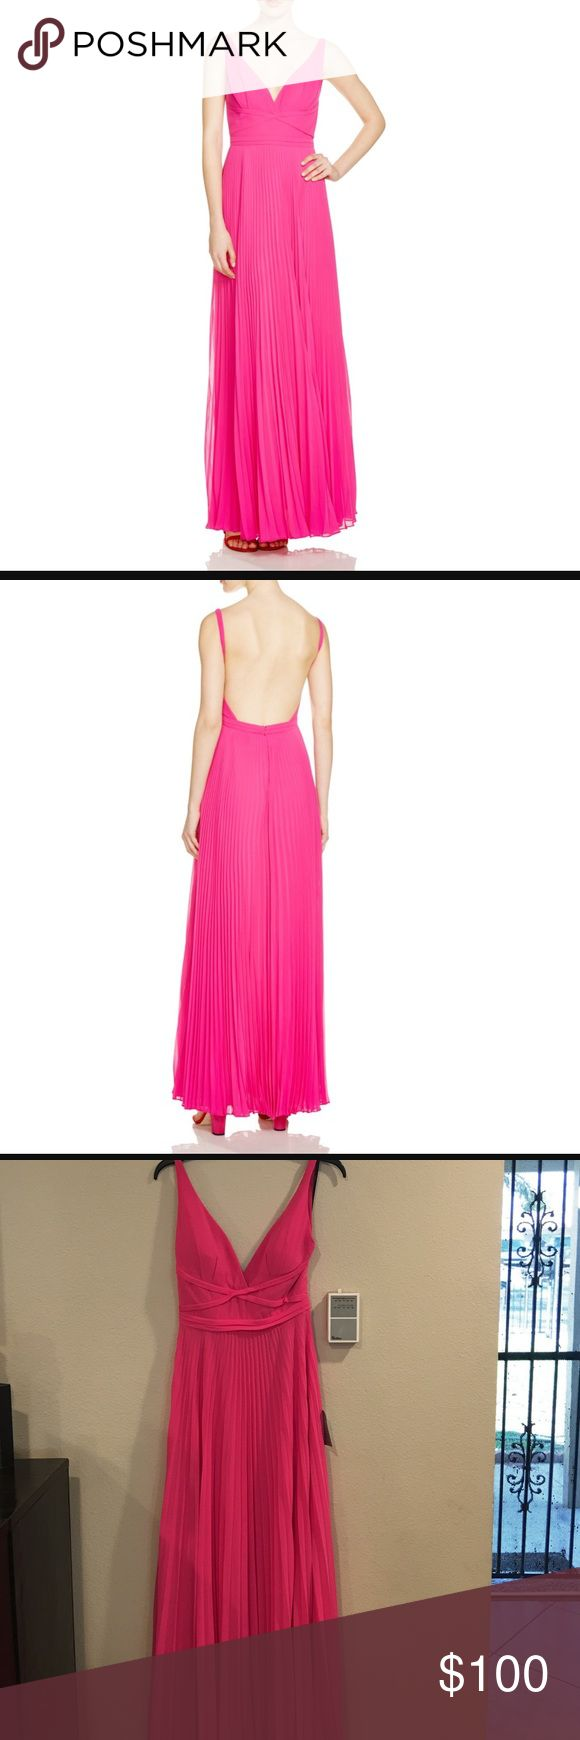 Laundry by Shelli Segal Sleeveless V-neck Gown! Sleeveless V-Neck Plisse Gown, Electric Pink! Offers Welcome!!😊 Laundry by Shelli Segal Dresses